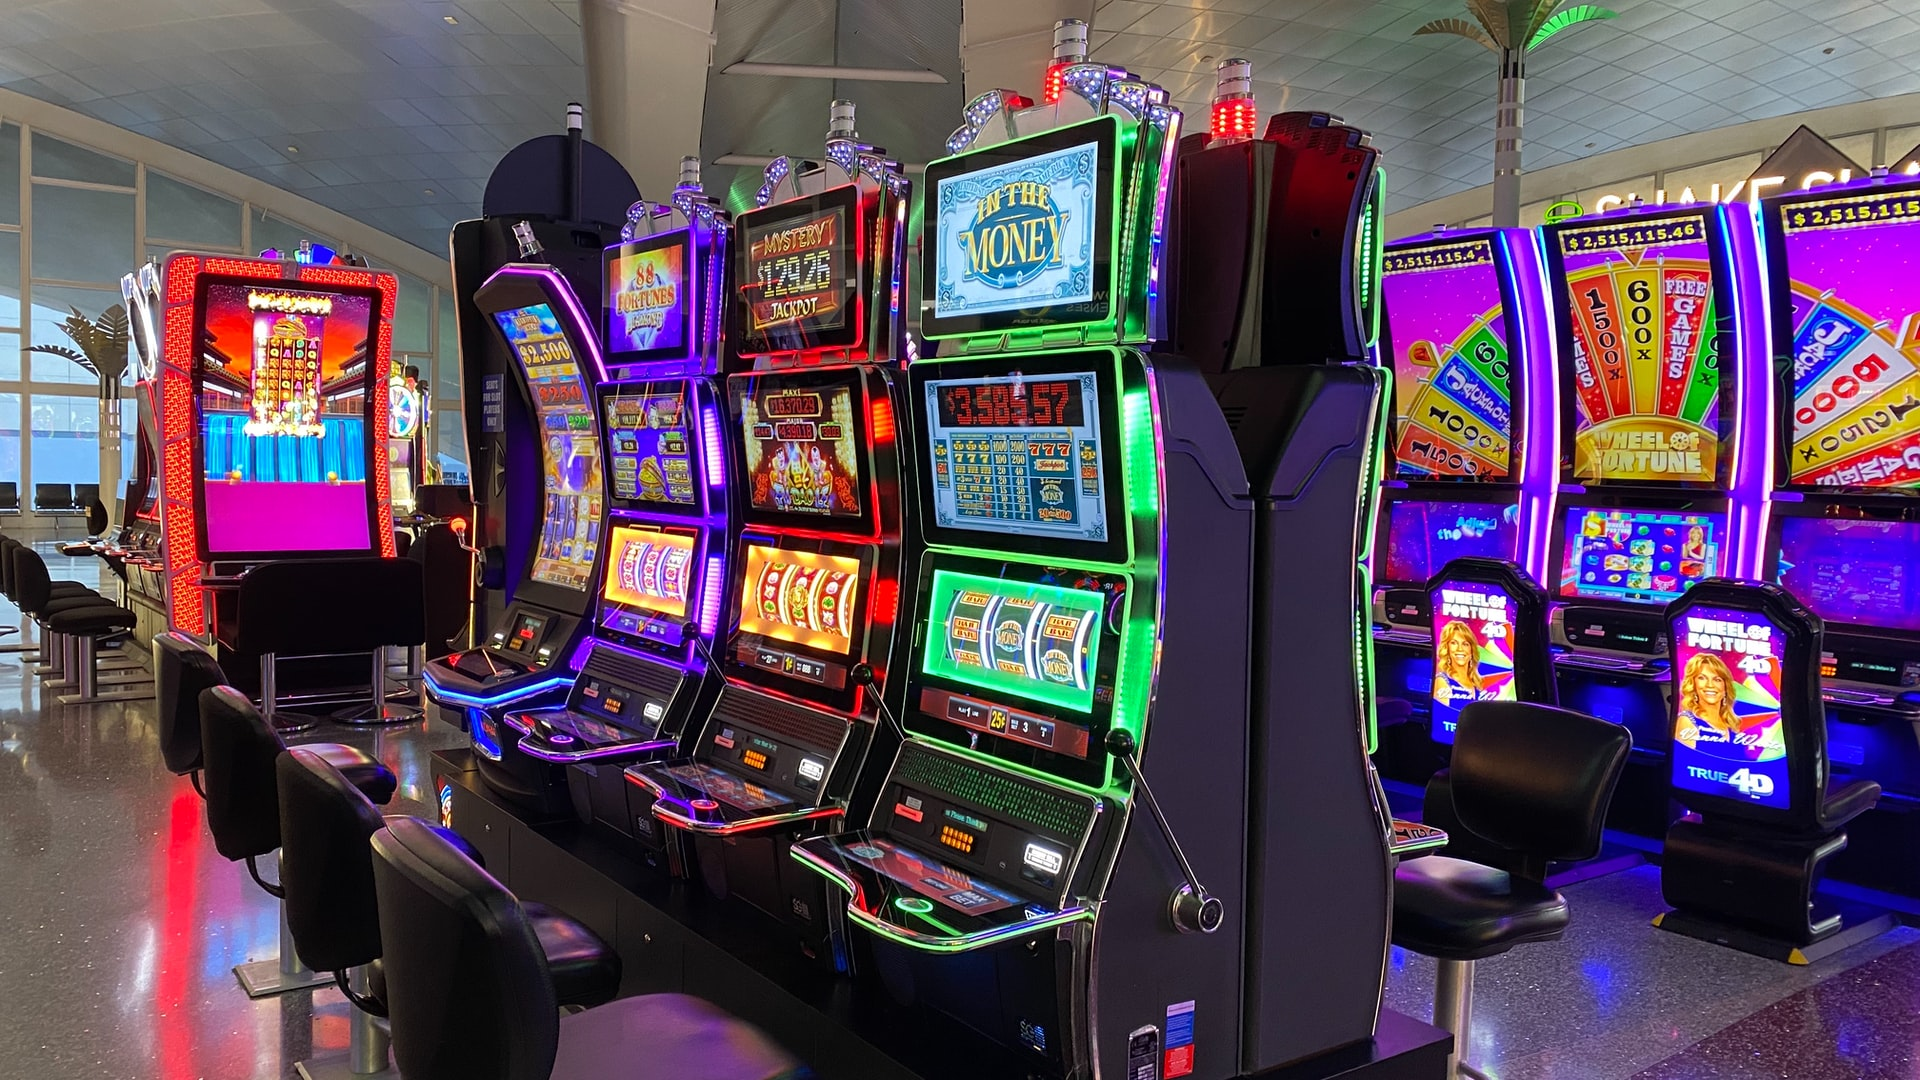 Methods that you can use to choose an online gambling website